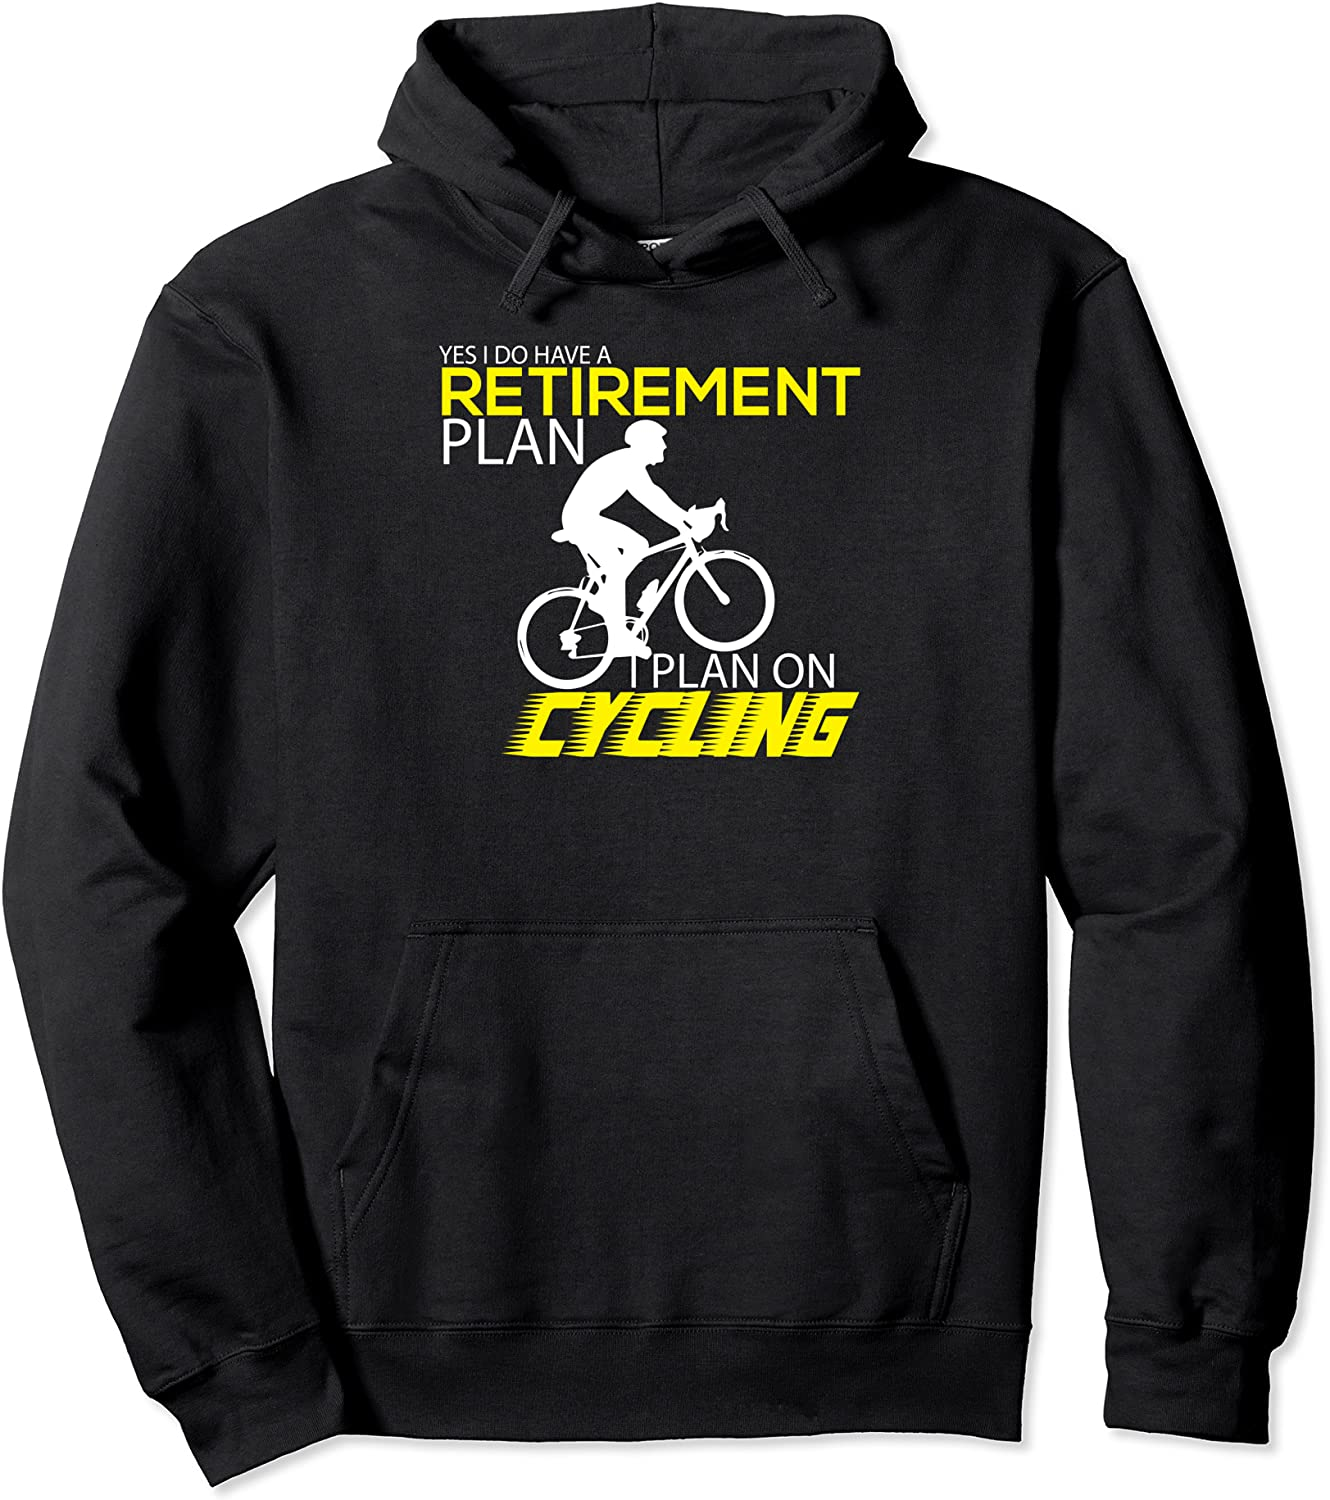 Retirement Plan On Cycling Cyclist Weekly Indefinitely update Hoodie Bicycle Funny